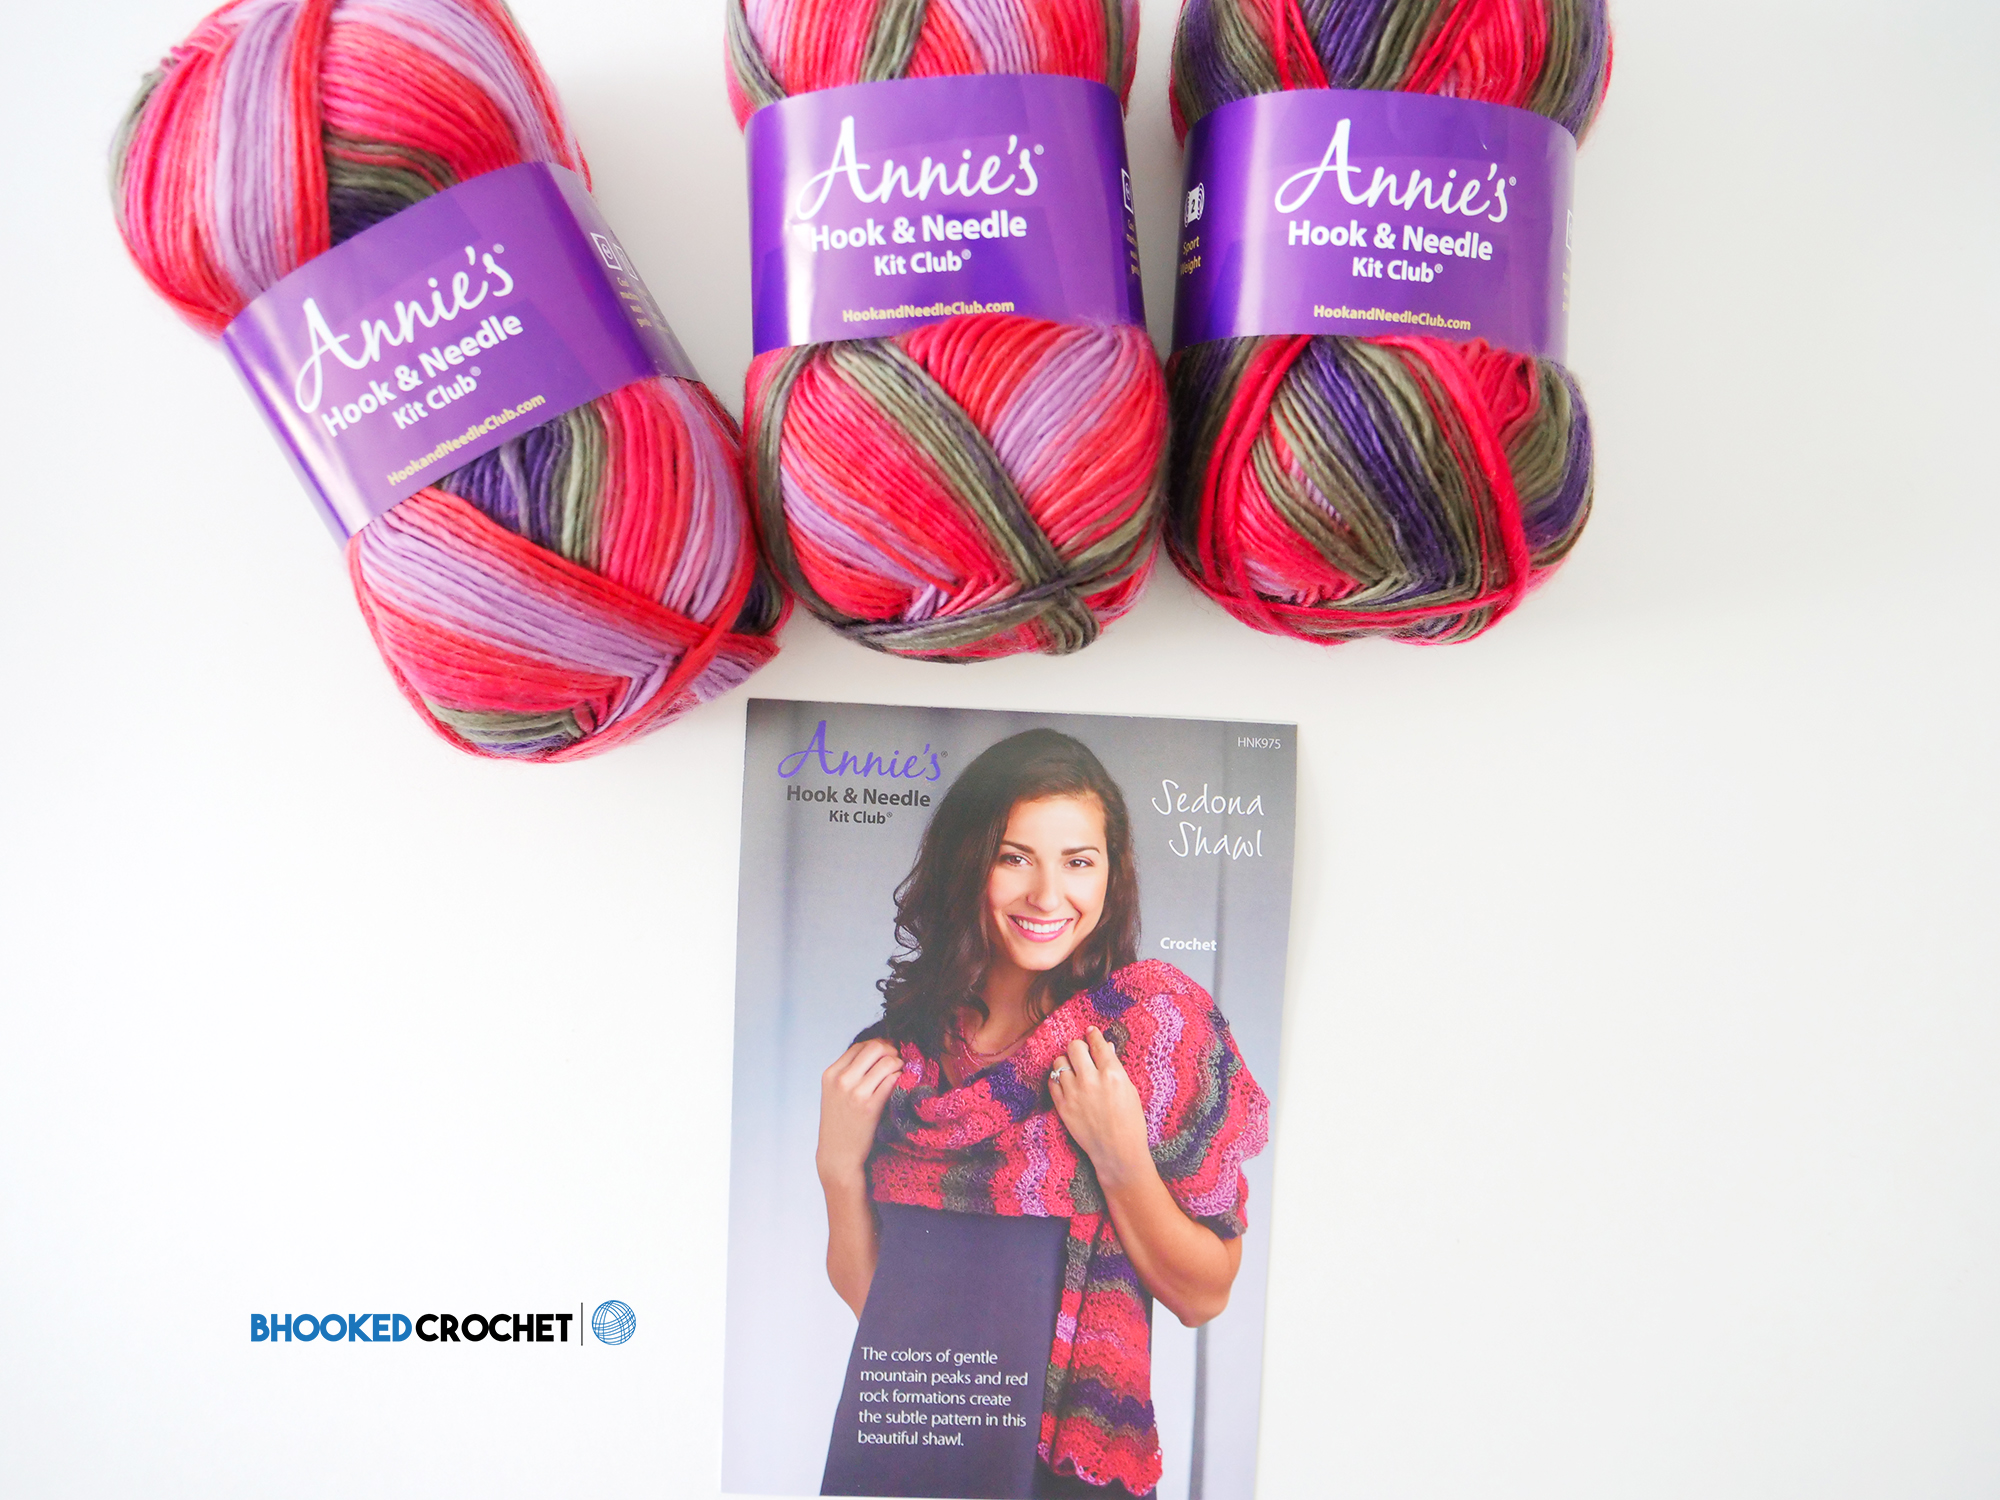 Annie's Hook & Needle Kit Club Review